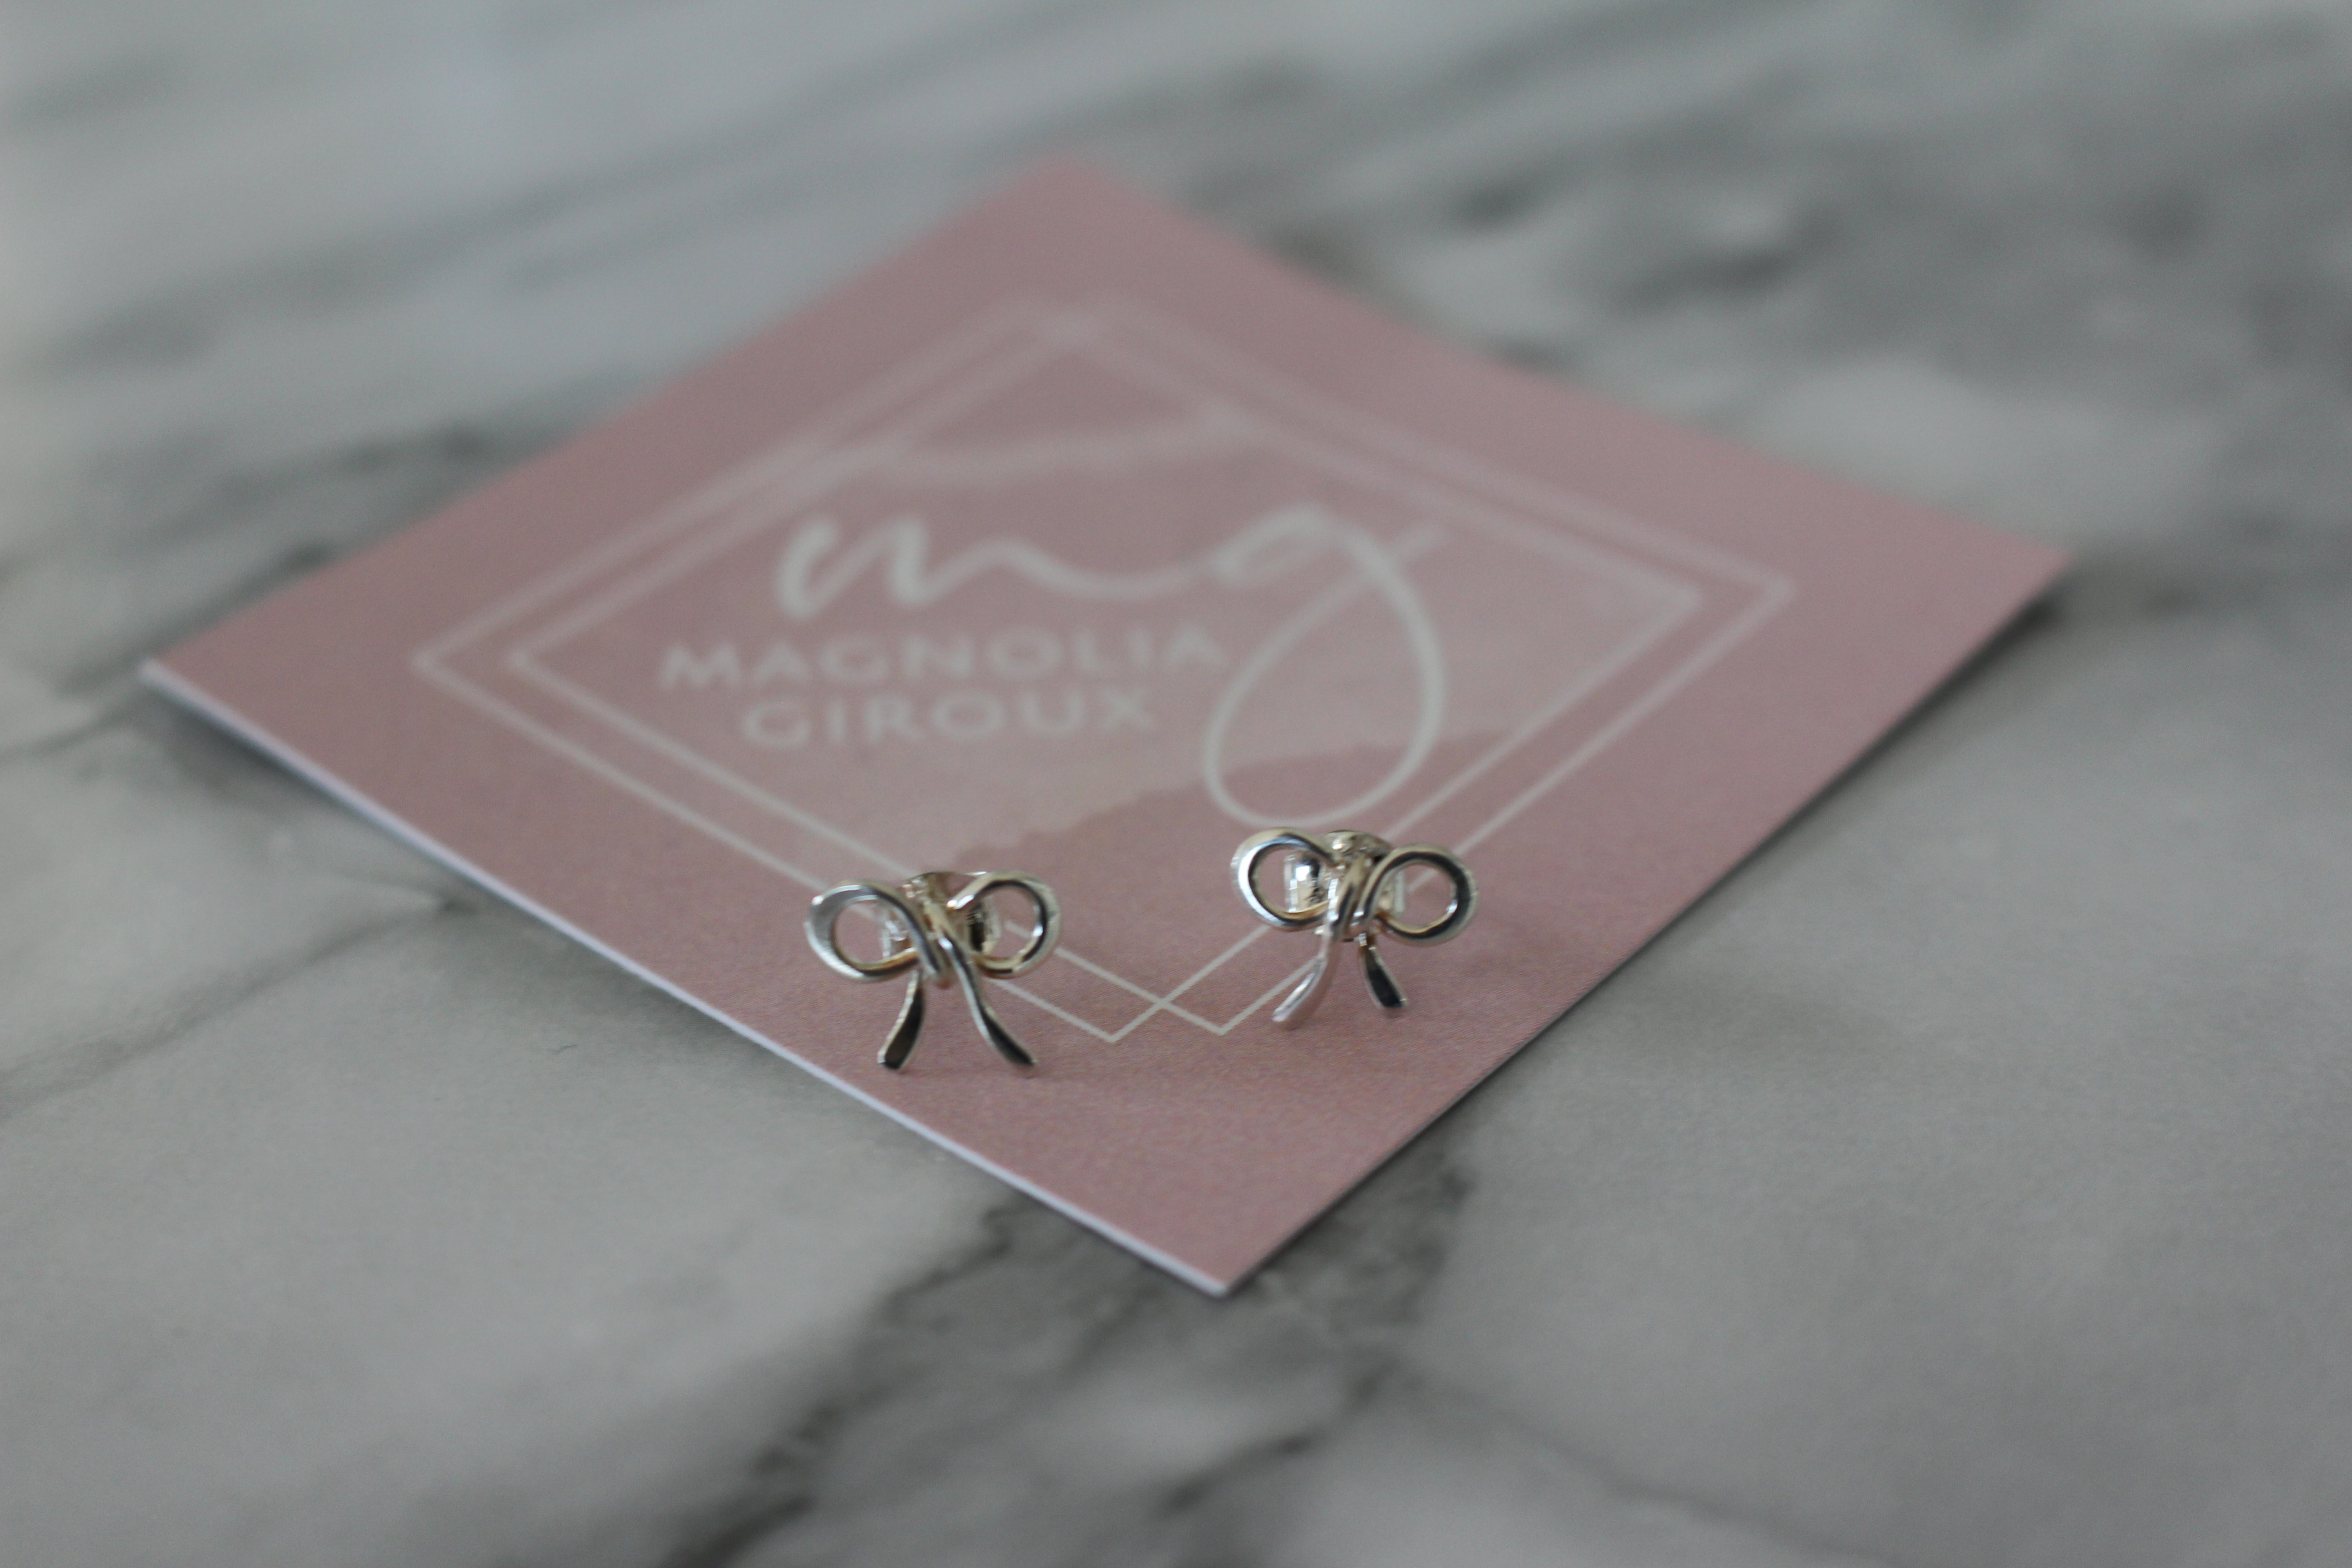 Magnolia Giroux Sterling Silver Bow Earrings - Jewellery - The Valley Boutique - Canada Online Shopping